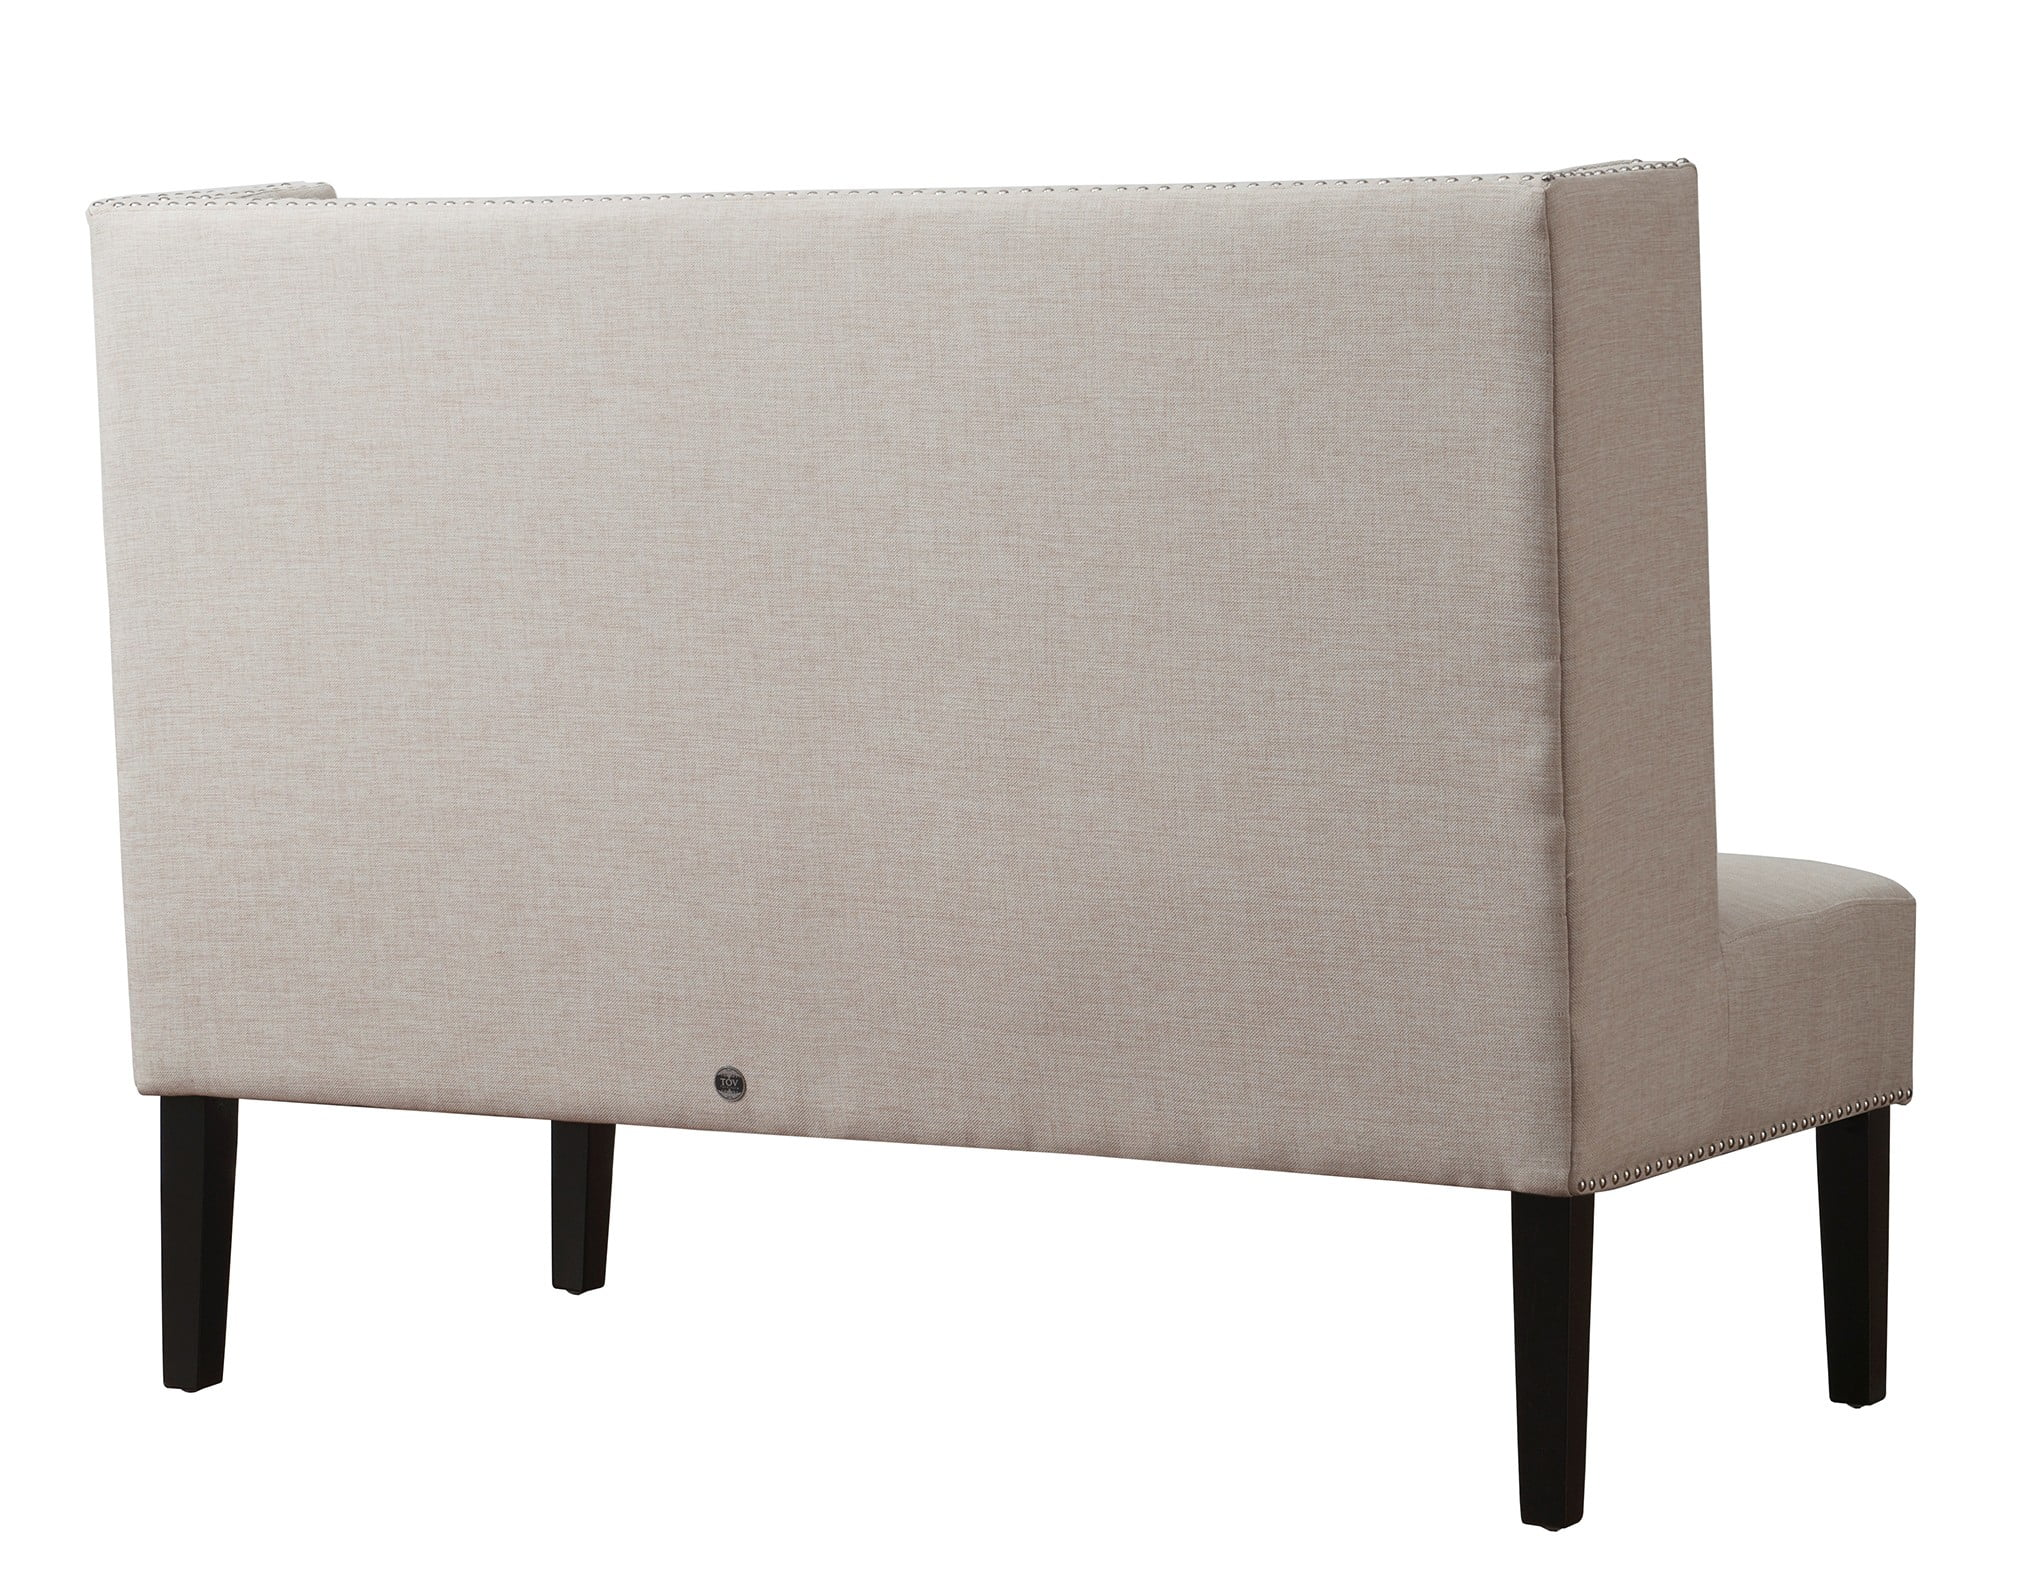 Banquette Beige Halifax Beige Linen Banquette Bench Set Of 2 From Tov (tov